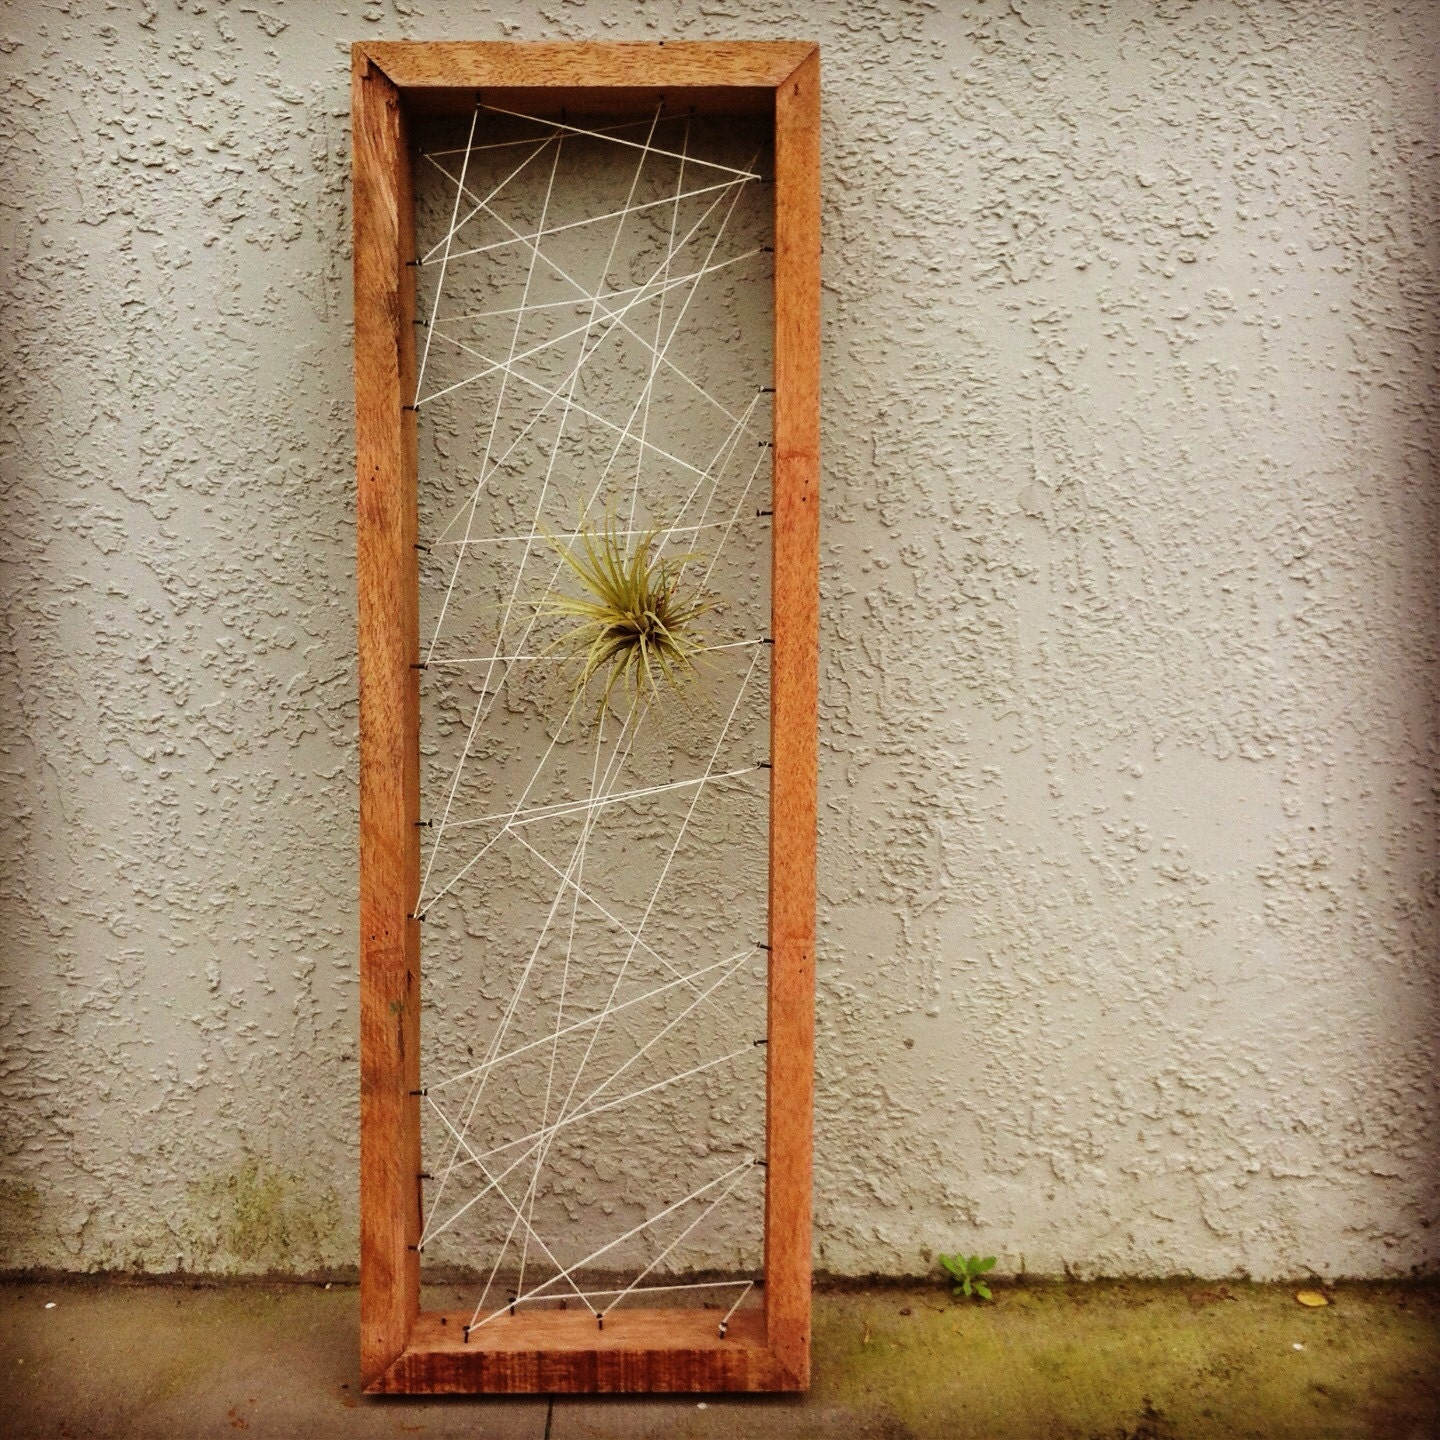 Wall art air plant personal rustic reclaimed by for Air plant art